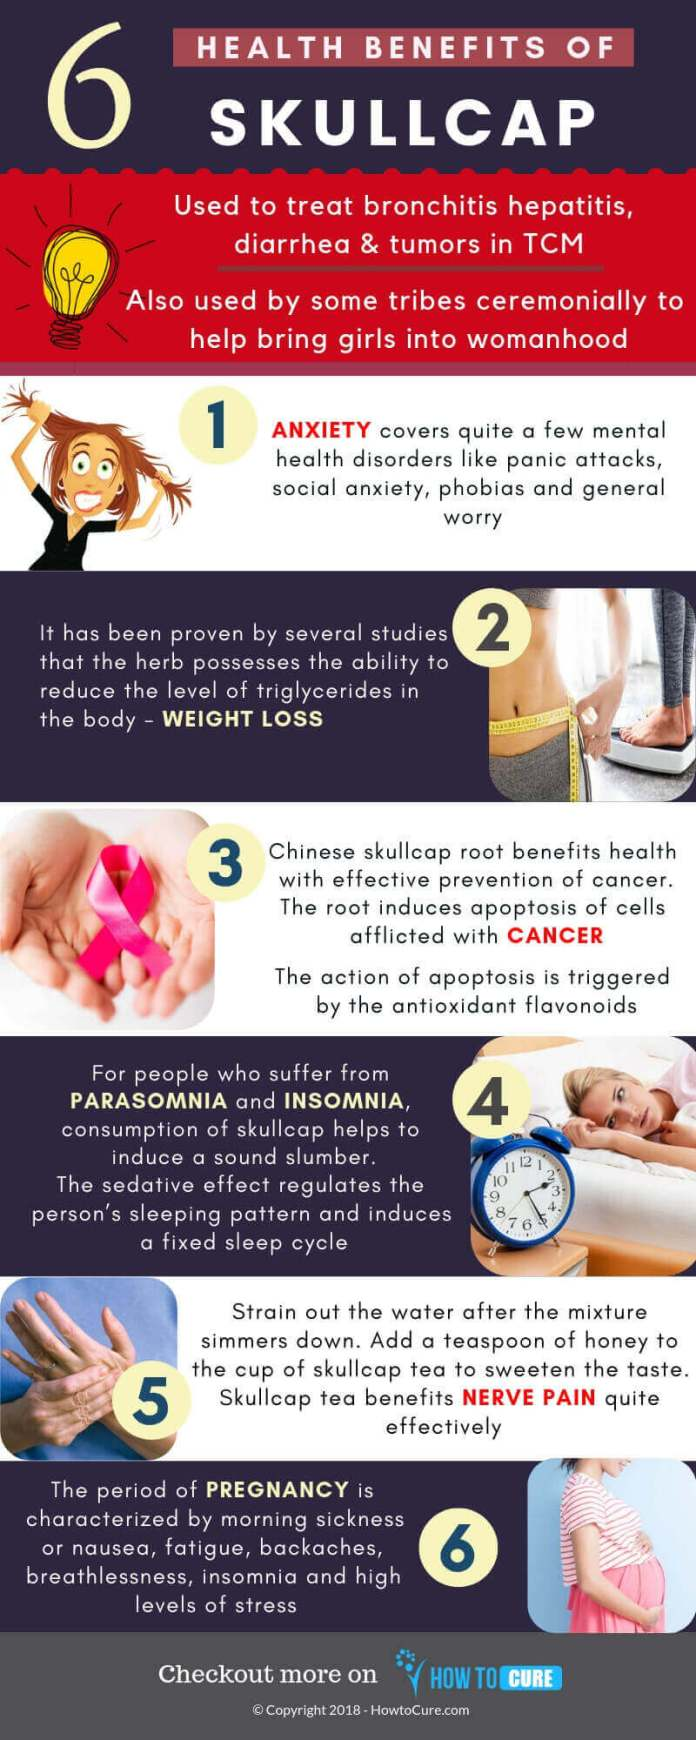 health benefits of skullcap - infographic